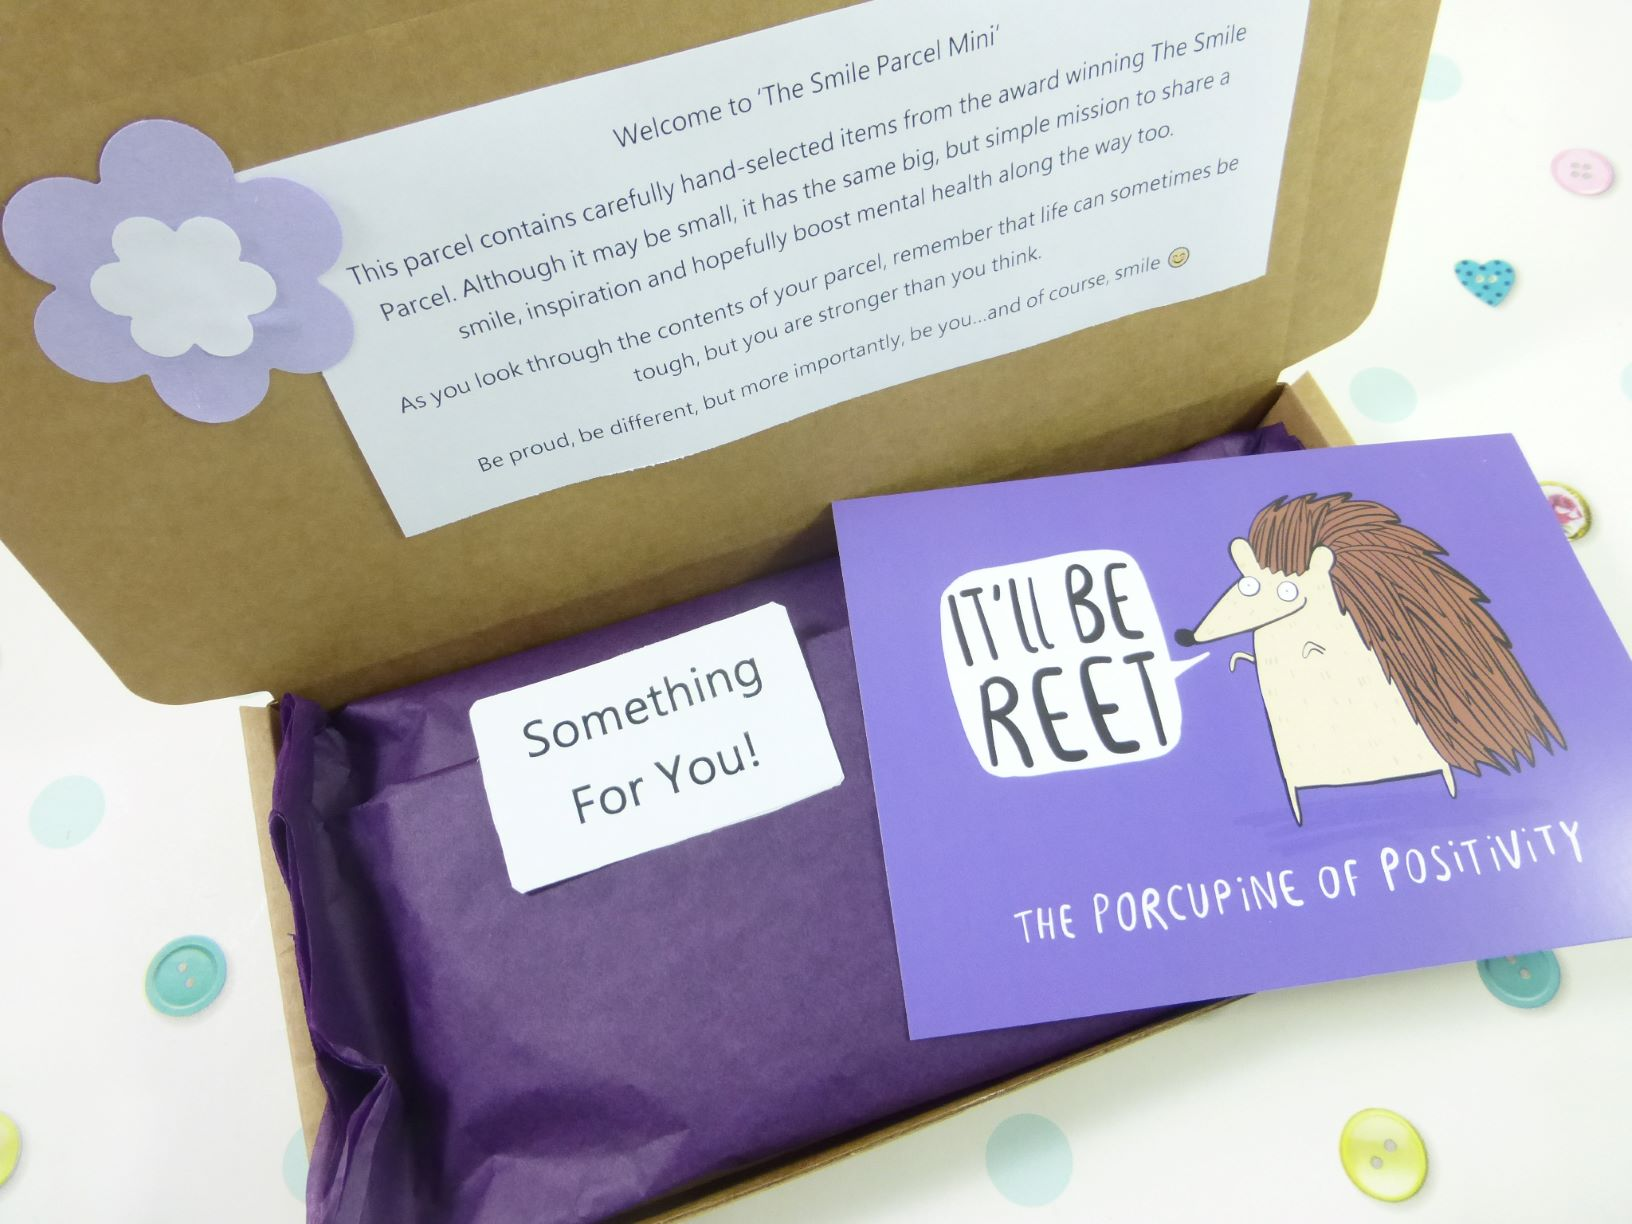 Purple Letterbox Friendly, Pick Me Up Gift, The Smile Parcel Mini, Happy Mail, Mental Health Box, Self Care Gift Box Kind Shop 2